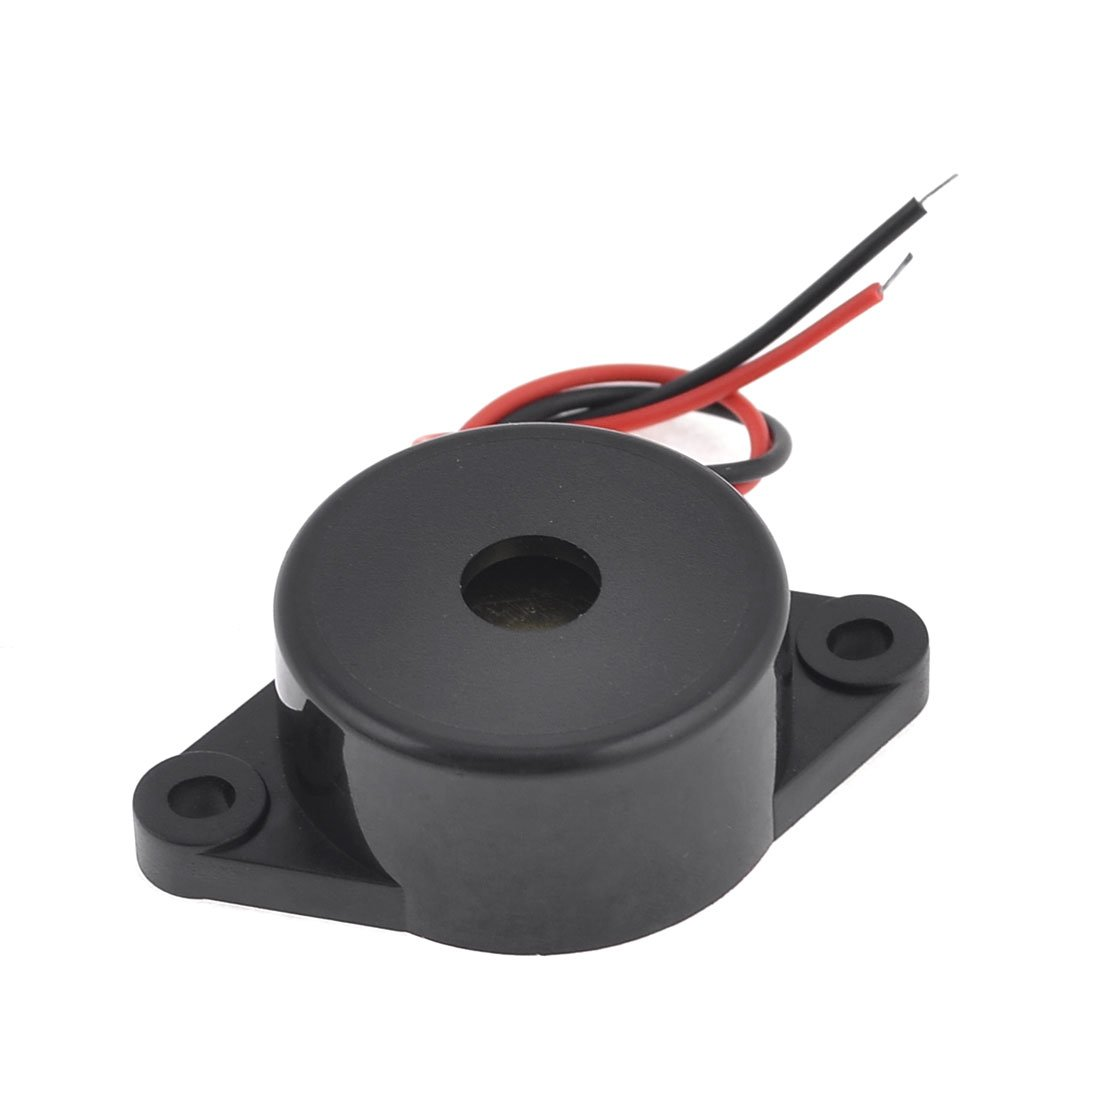 SFM-27 DC 3-24V 2 Wire Industrial Electronic Continuous Sound Buzzer 80dB uxcell a13072300ux0470